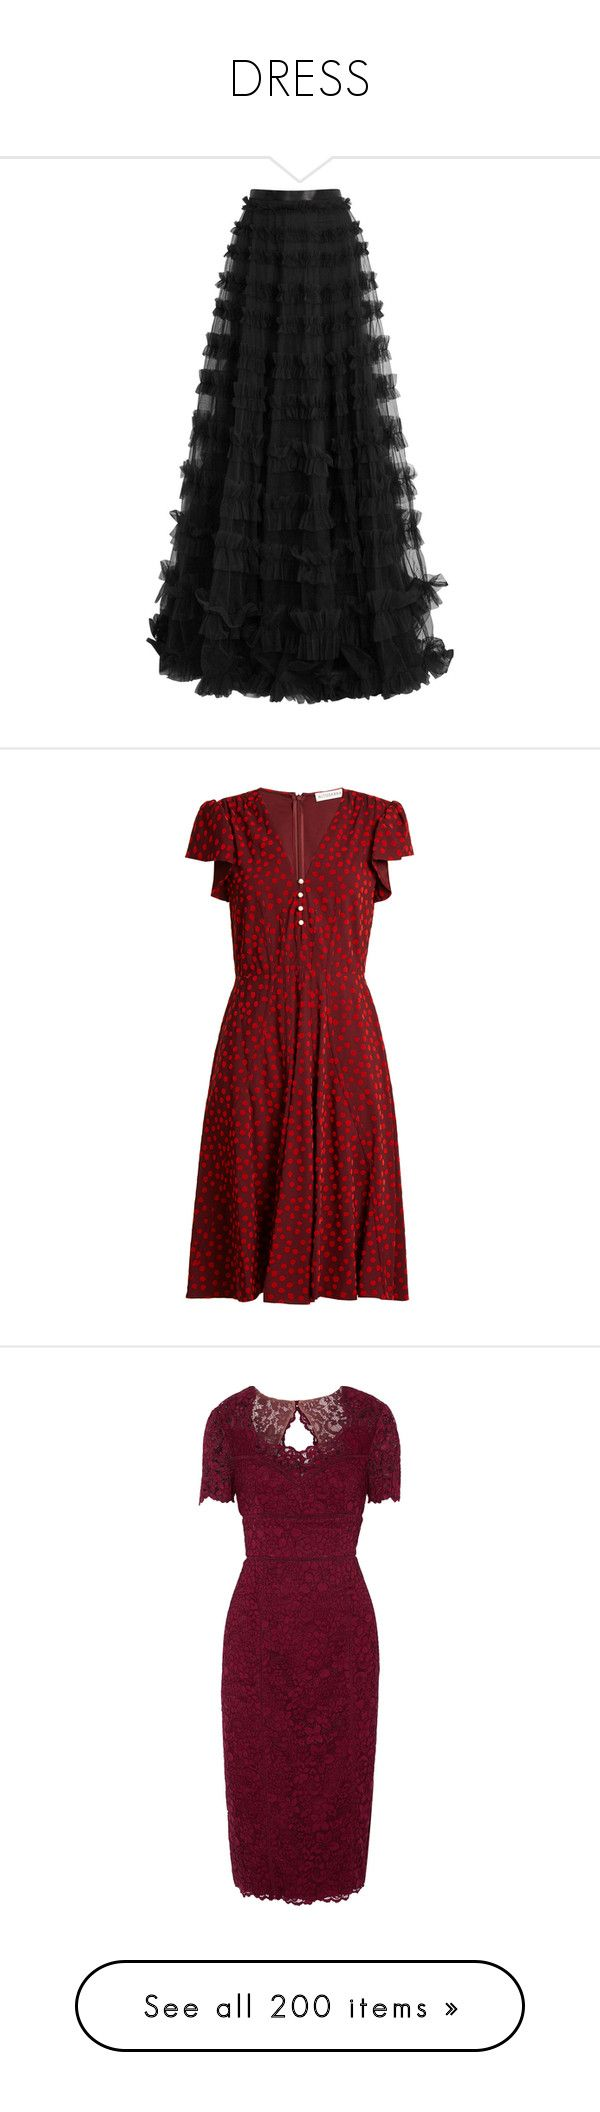 """""""DRESS"""" by susibonvi ❤ liked on Polyvore featuring skirts, long tulle skirt, ruffled skirt, floor length tulle skirt, maxi skirt, long ruffle skirt, dresses, altuzarra, red dresses and burgundy"""